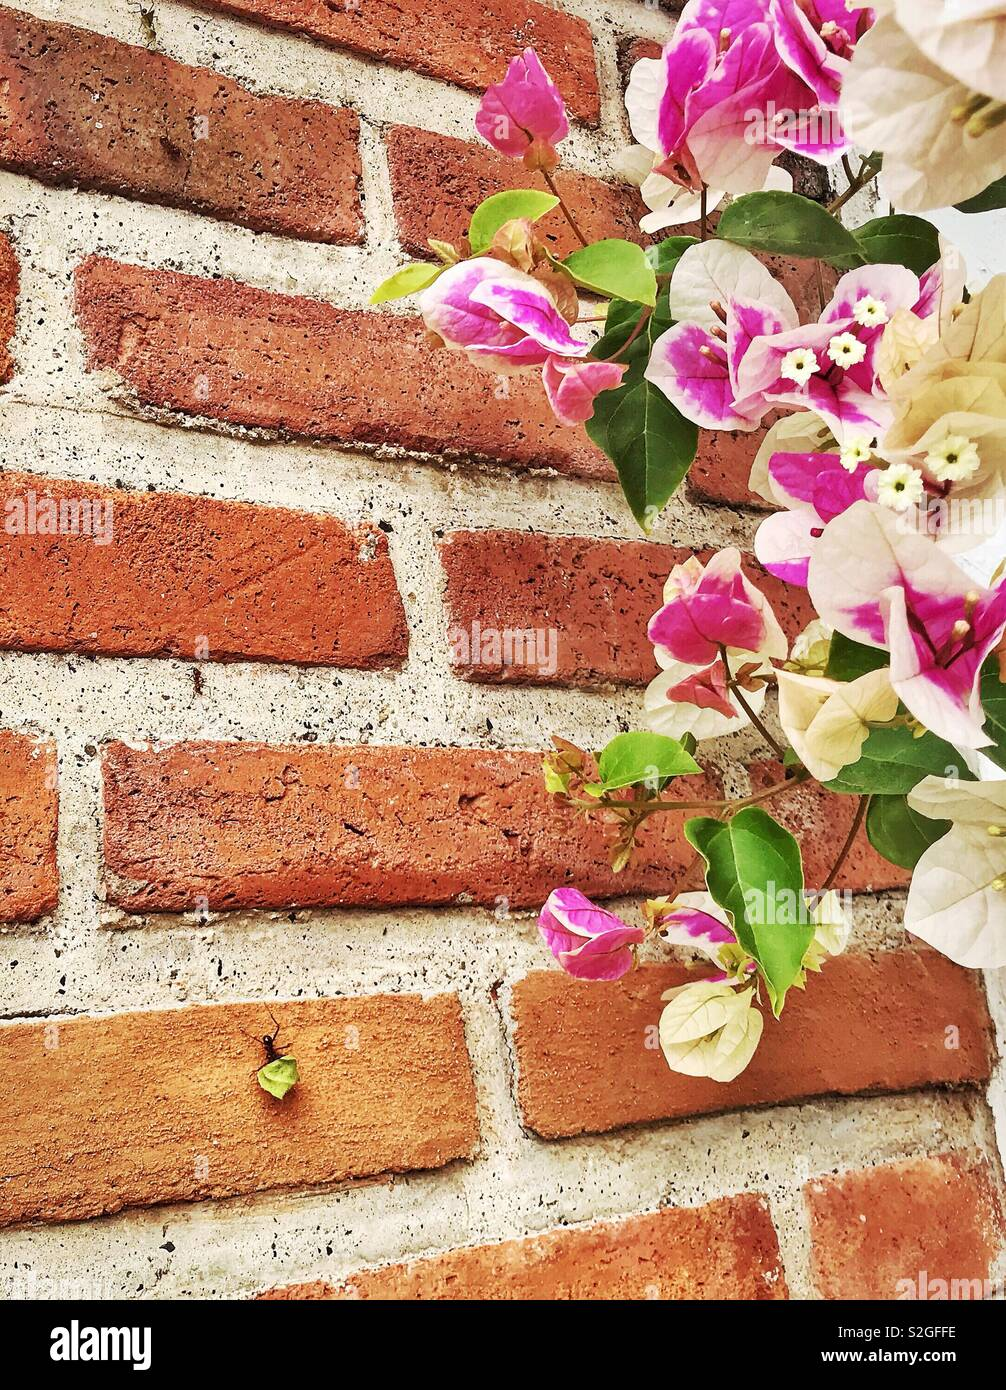 A very industrious leafcutter ant removes a portion of a leaf from a bougainvillea plant and carries it down a brick wall. - Stock Image